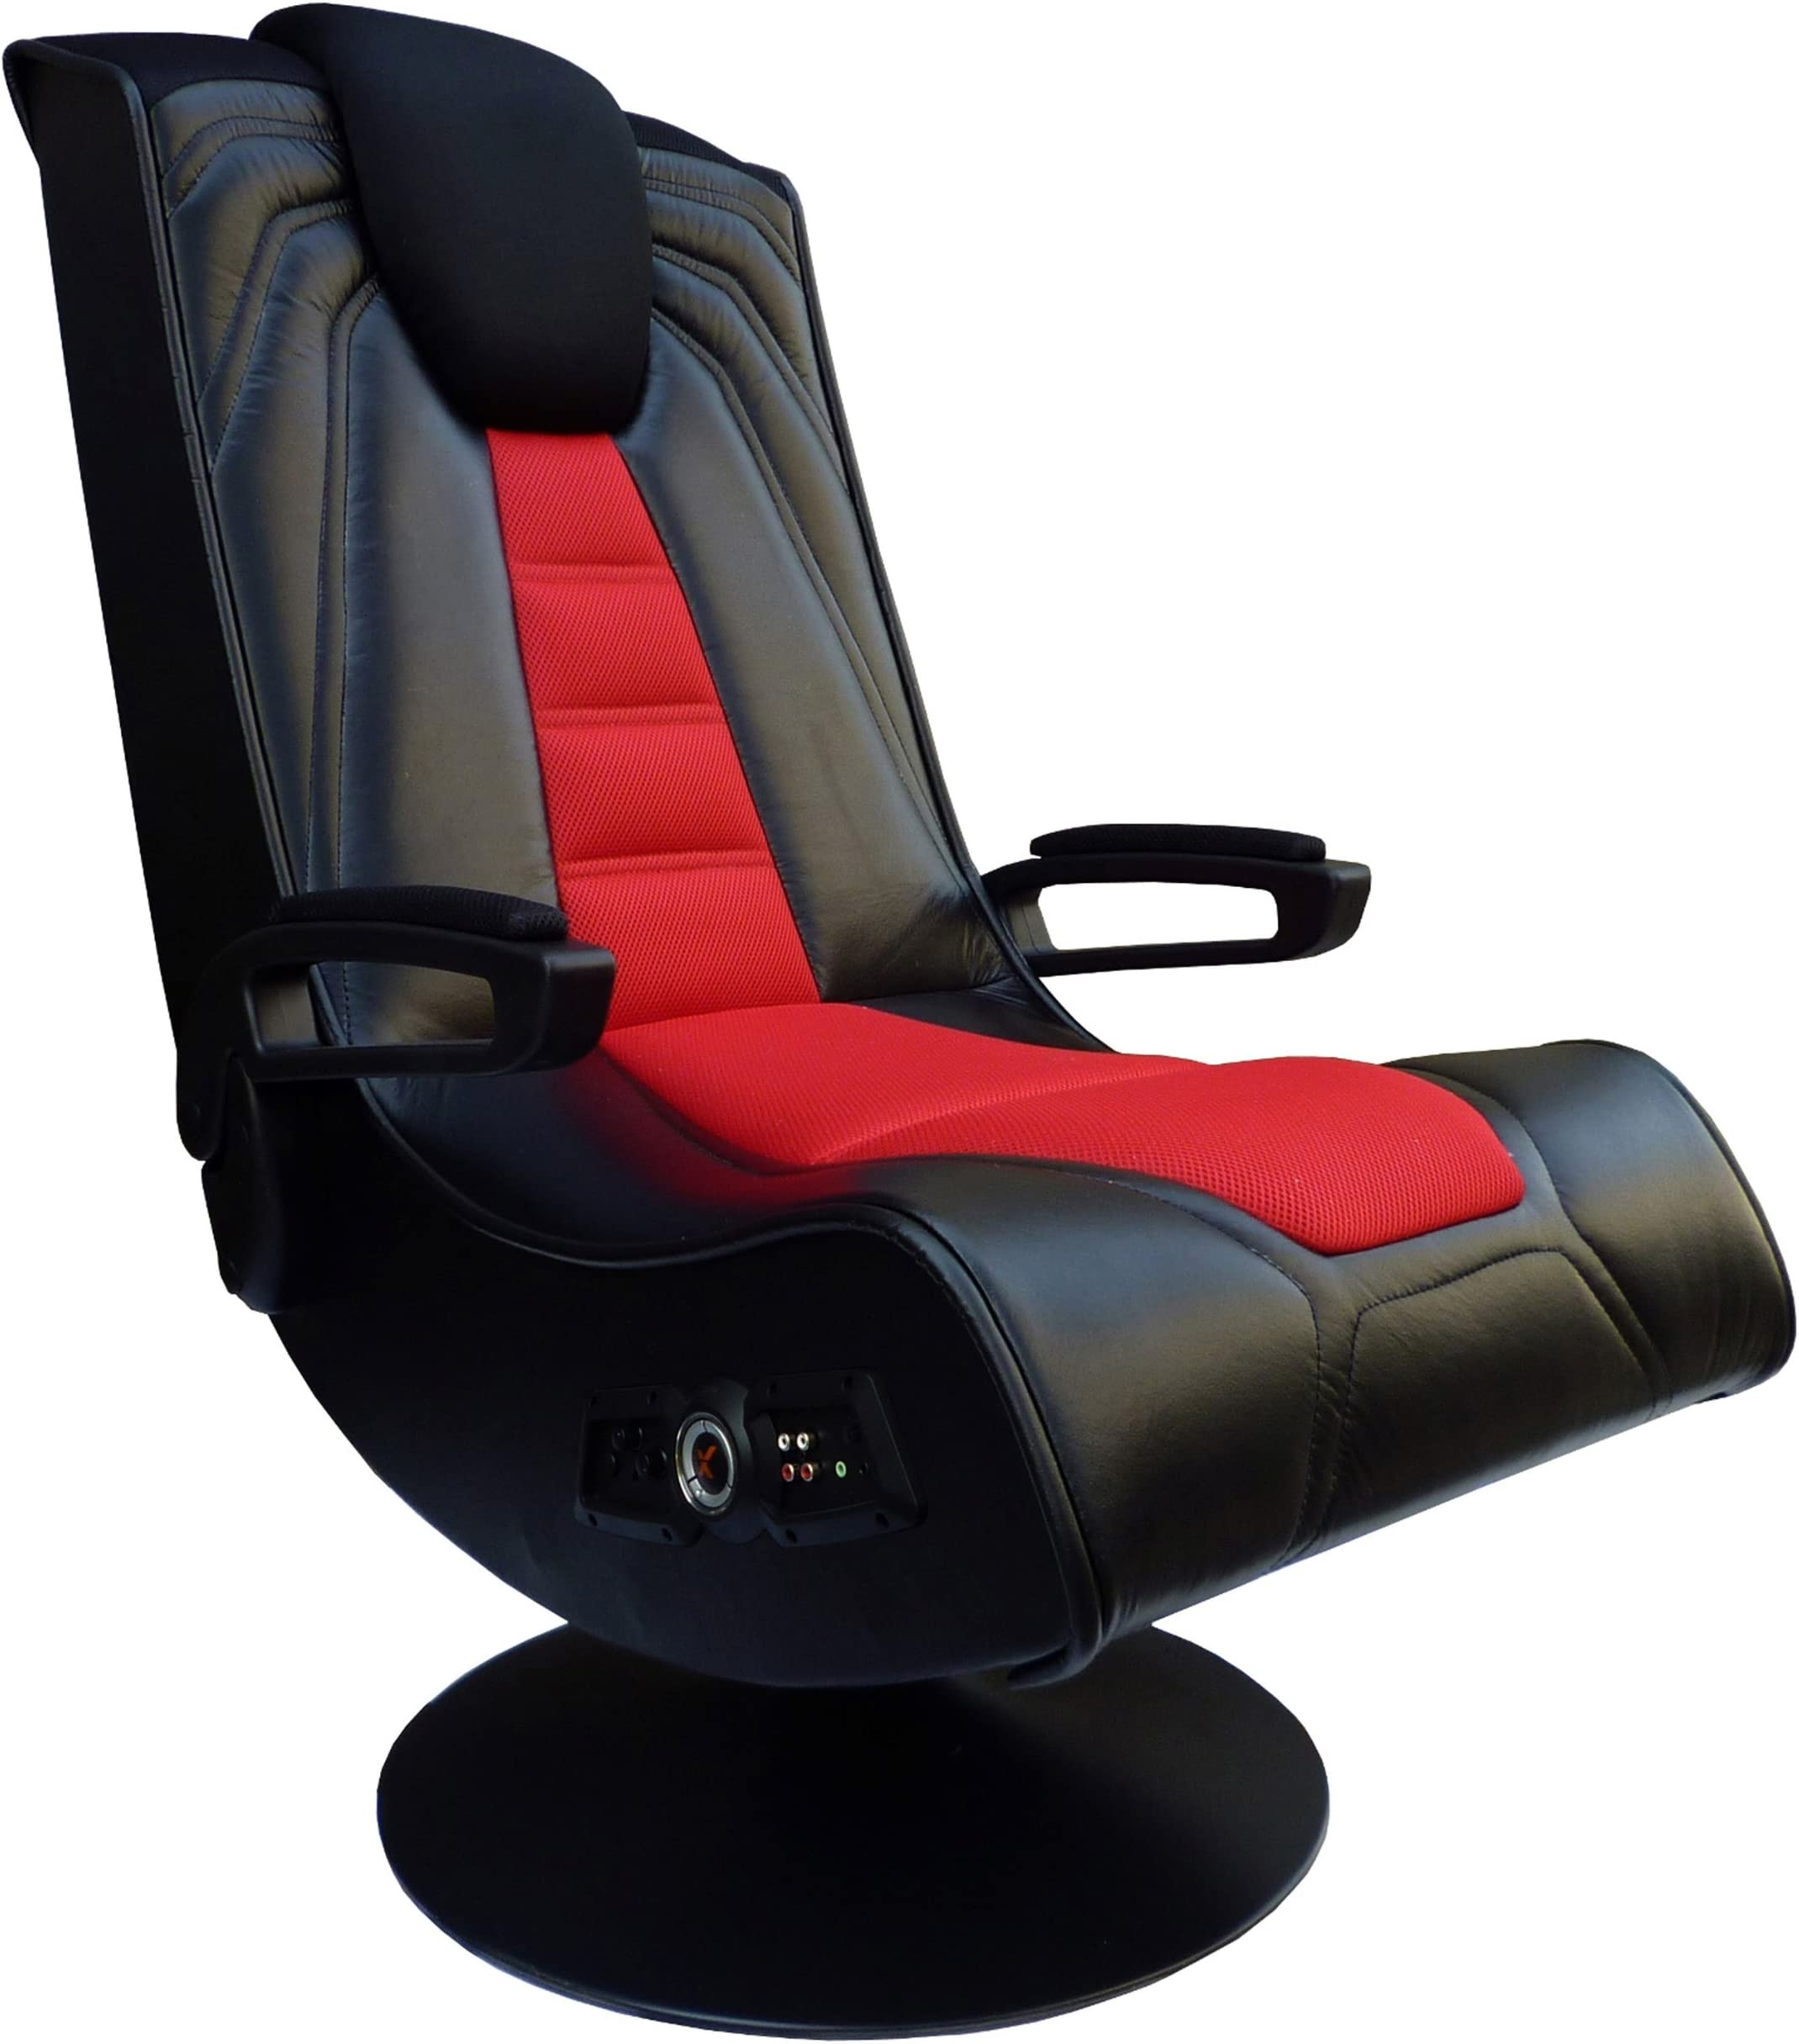 ACEssentials, 5149201, Pedestal Extreme III 2.1 Sound Wireless Video Foldable Gaming Chair w/Pedestal Base and 2 Speaker High Tech Audio System, 29.13 x 16.14 x 30.91, Black/Red